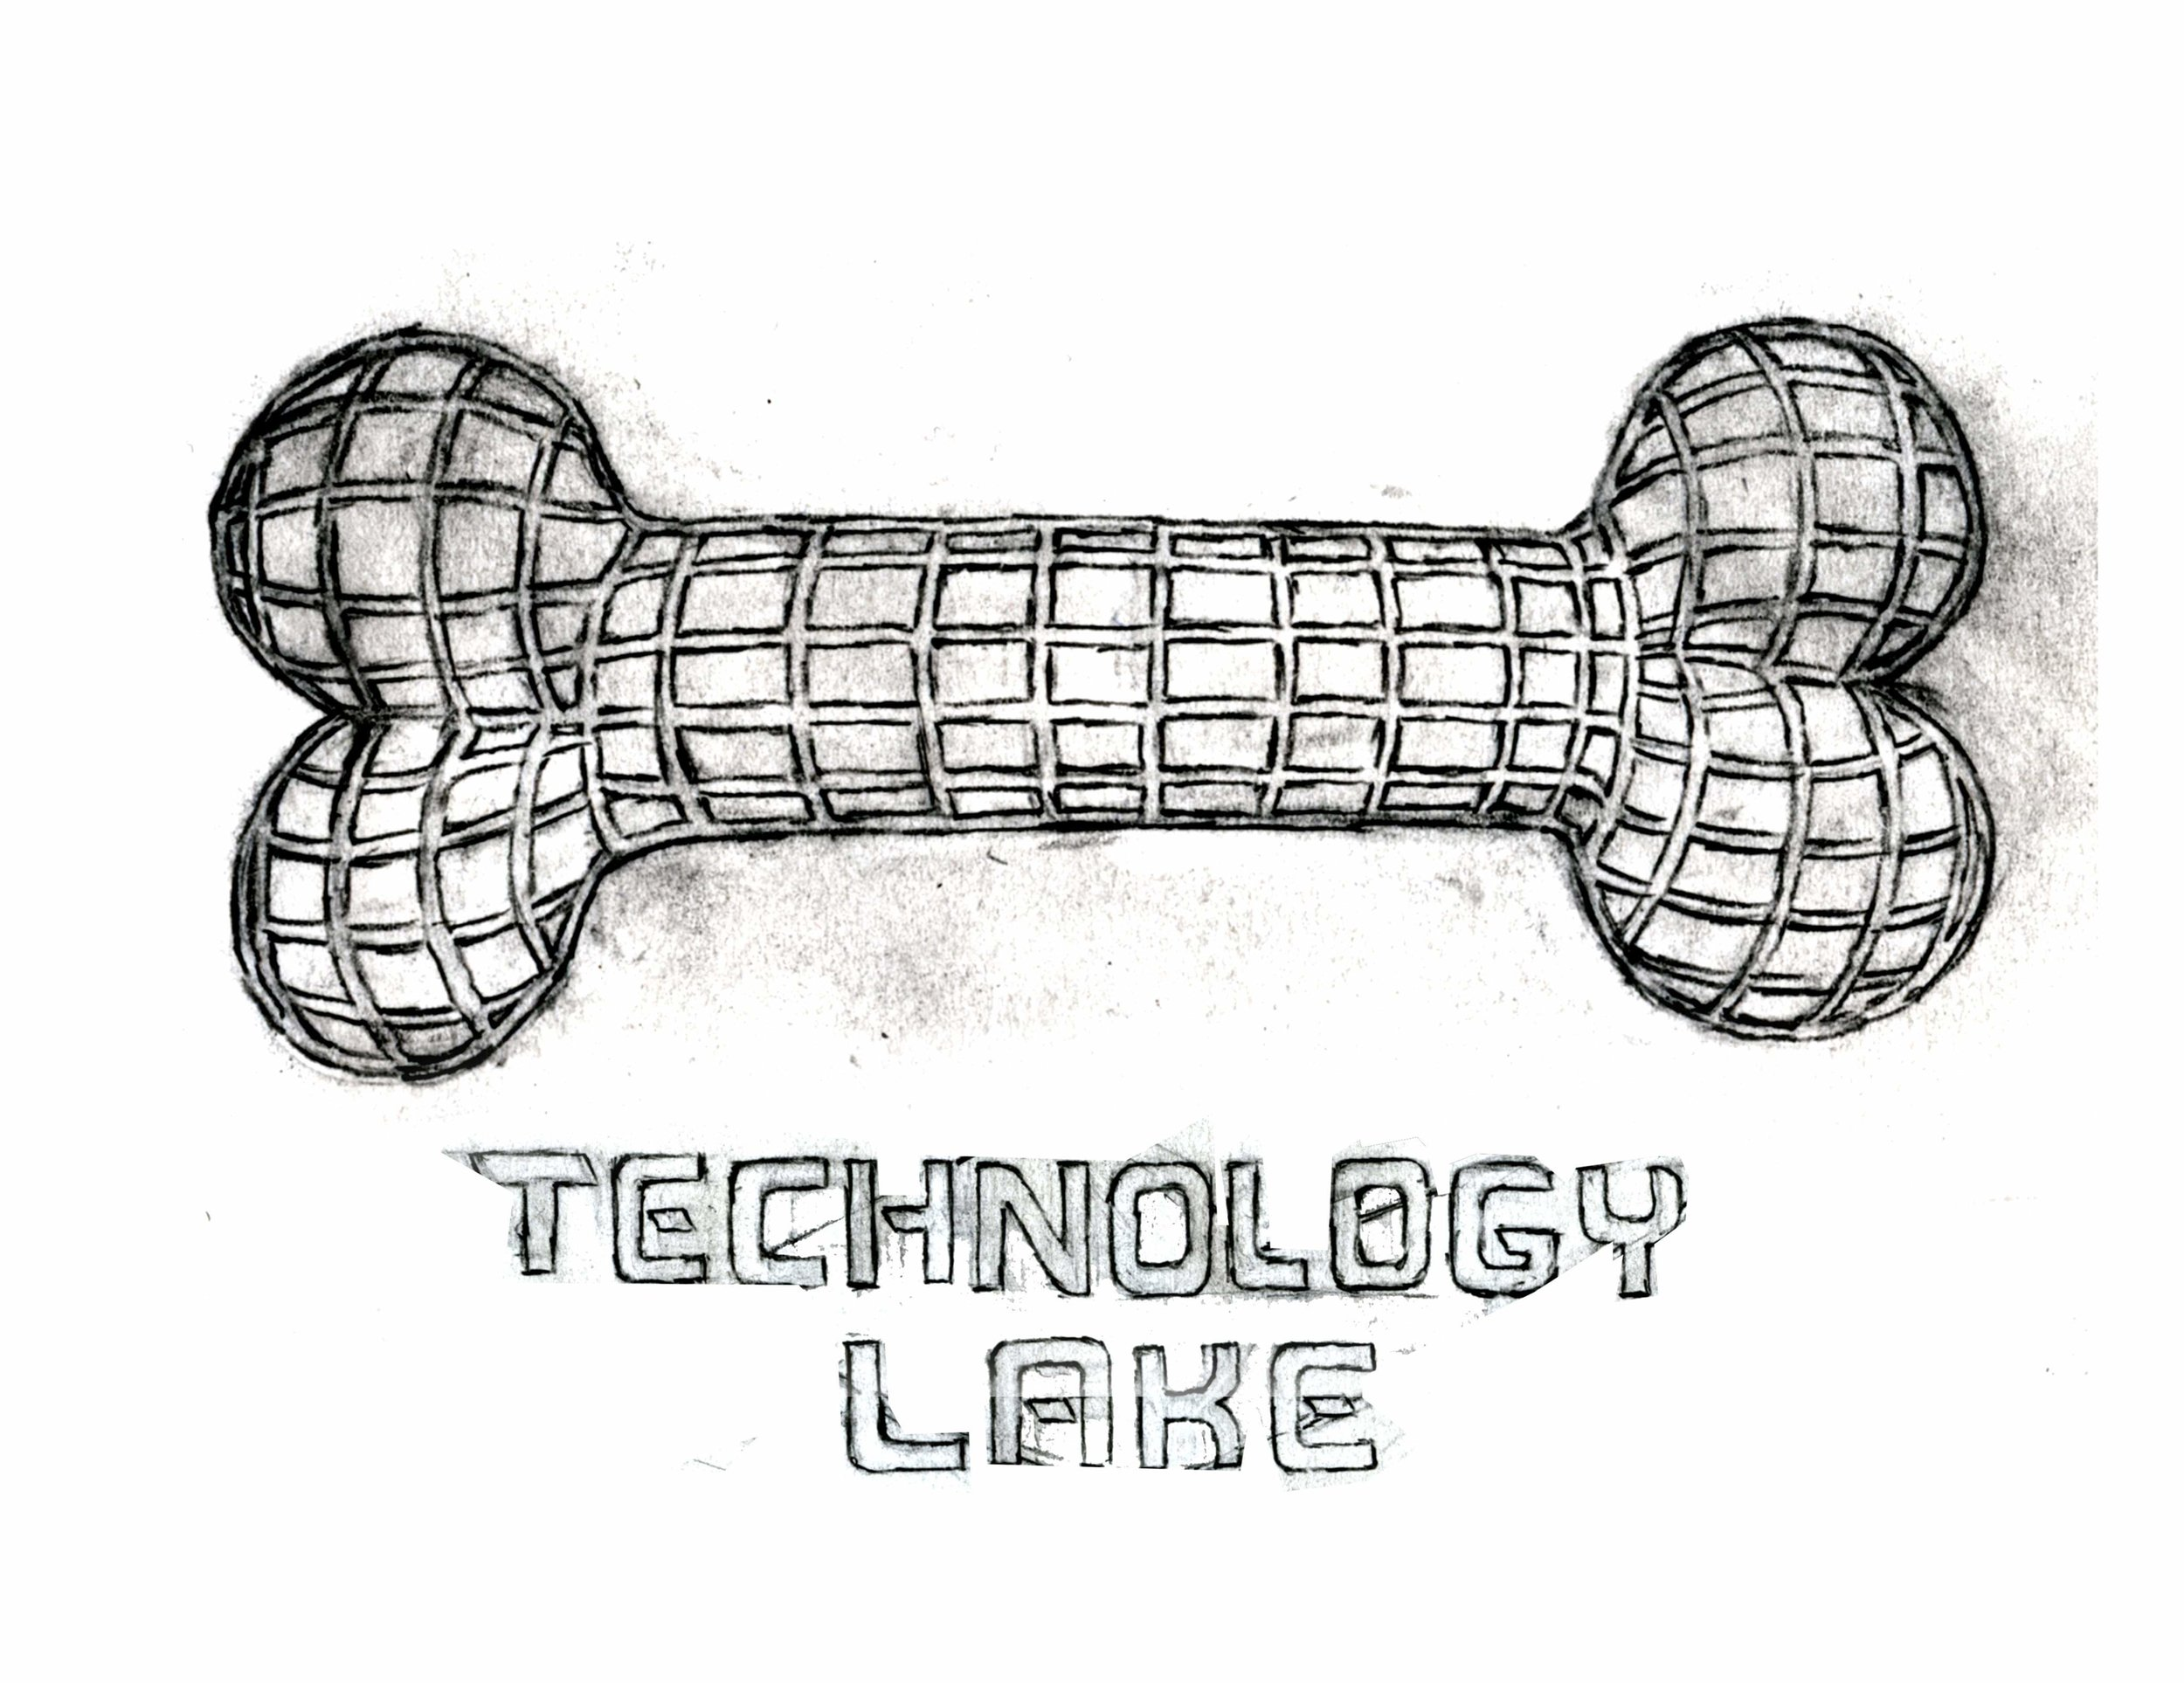 Technology Lake: Meditations on Death and Sex